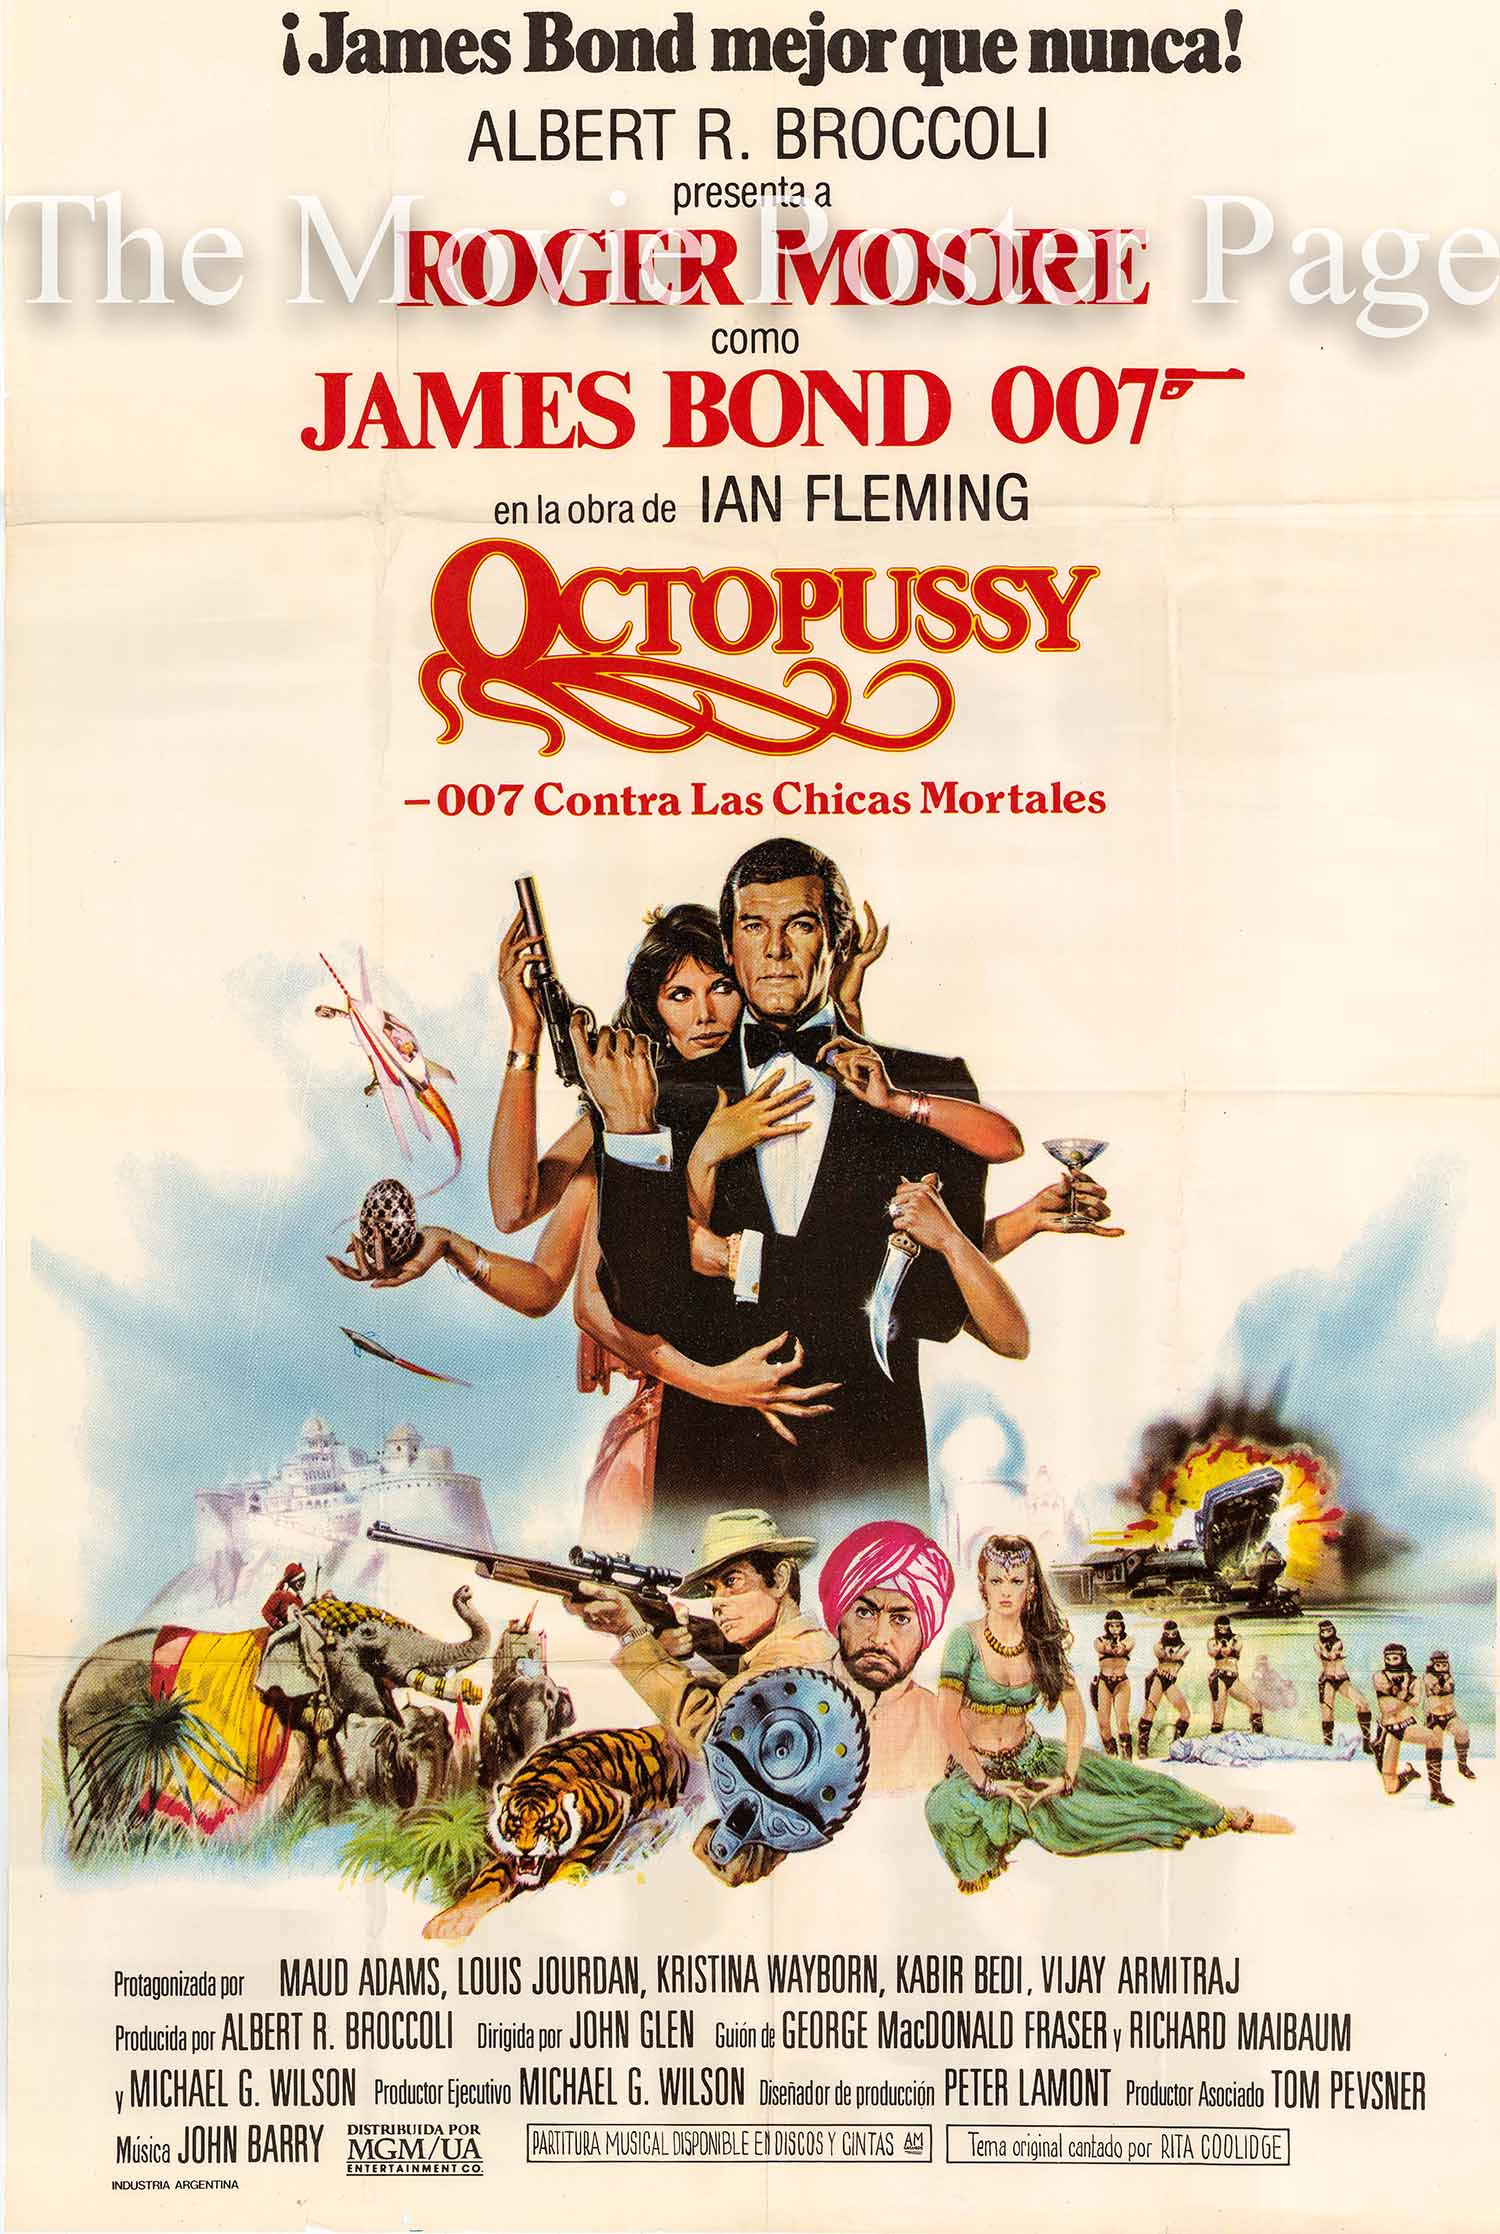 Pictured is an Argentine promotional poster for the 1983 John Glen film Octopussy starring Roger Moore as James Bond.